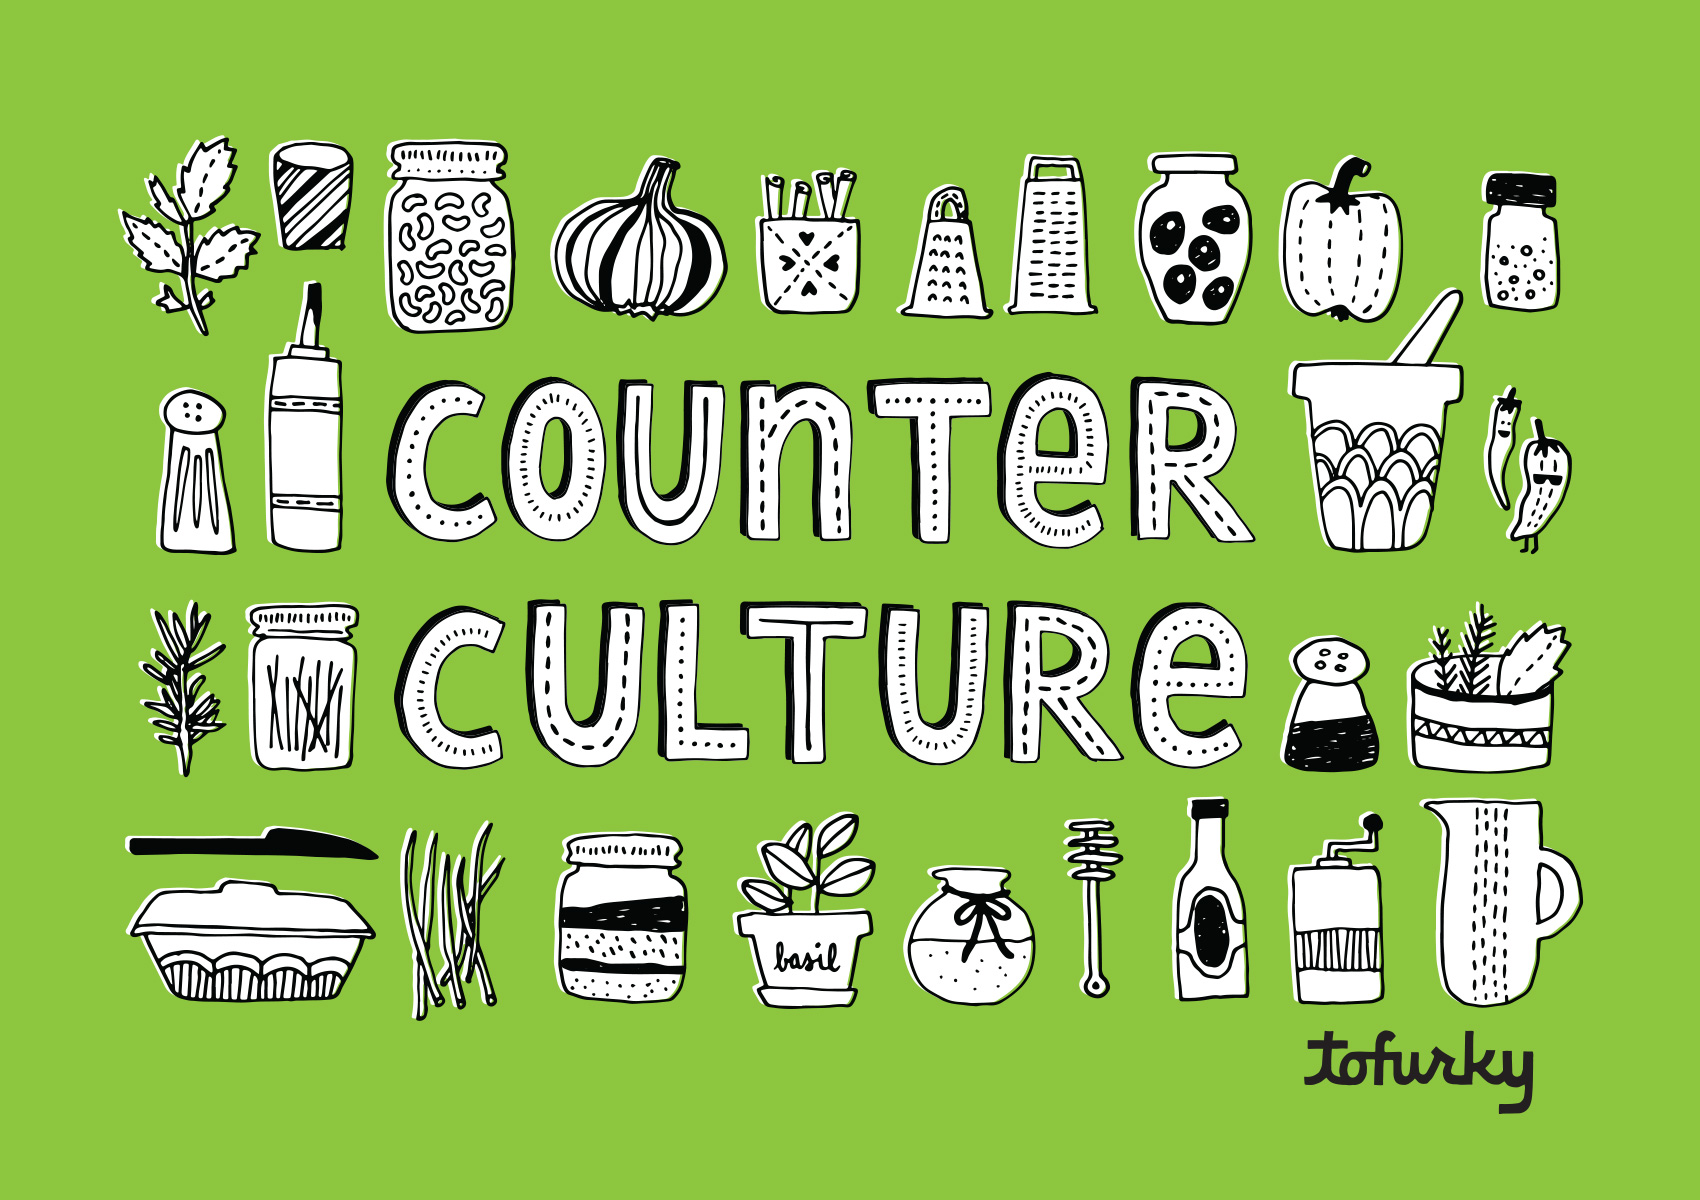 Tofurky-counter-culture-typography